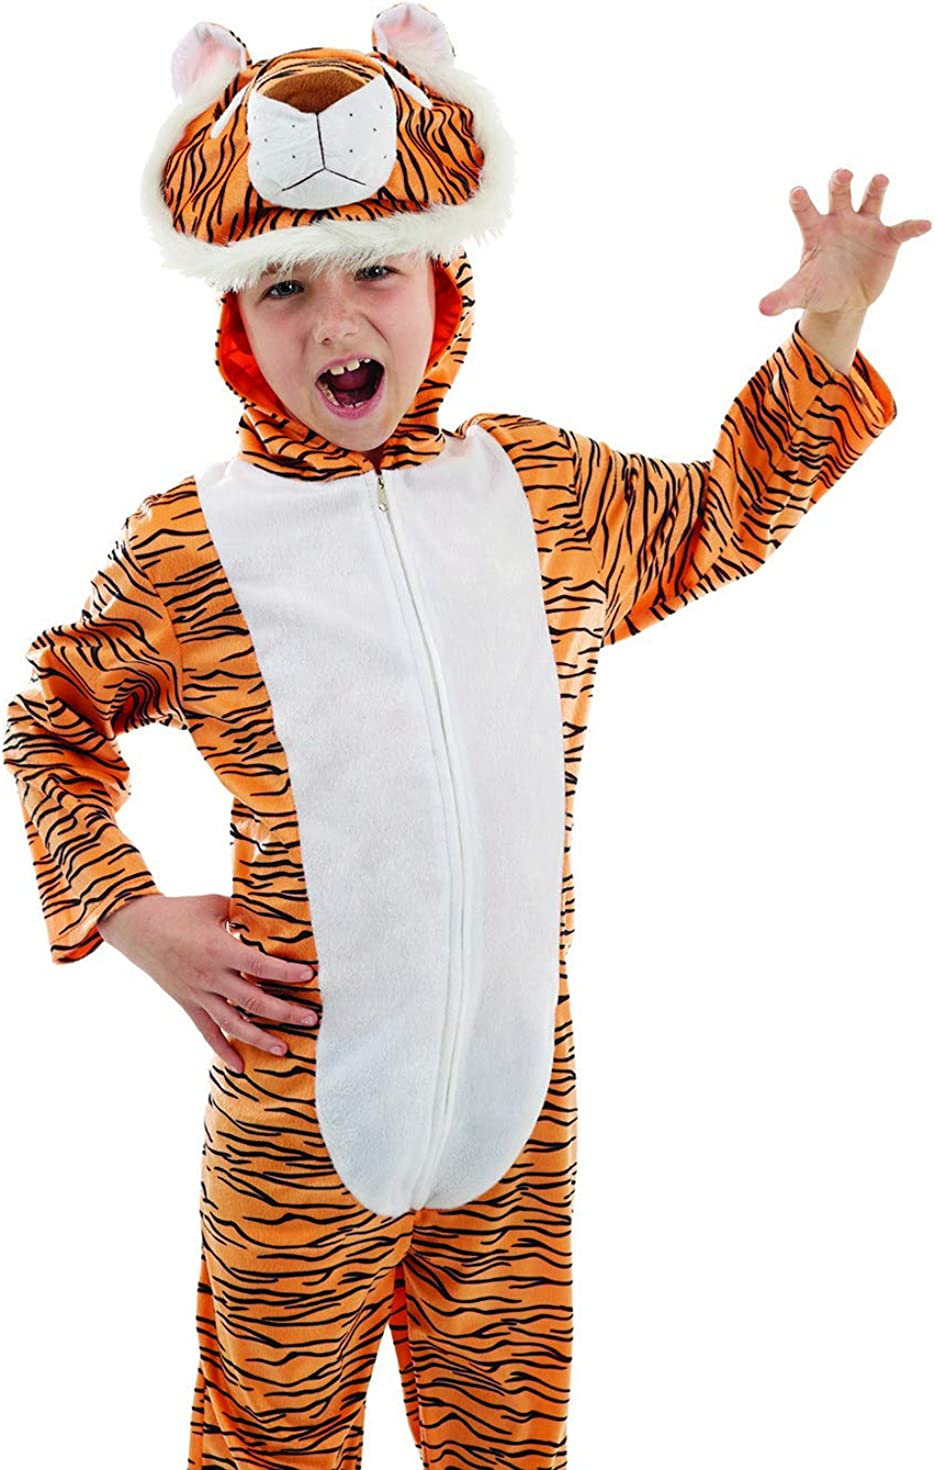 Kids Animal Costumes Childrens Cute Tiger Spider Dragon Boys /& Girls Outfits